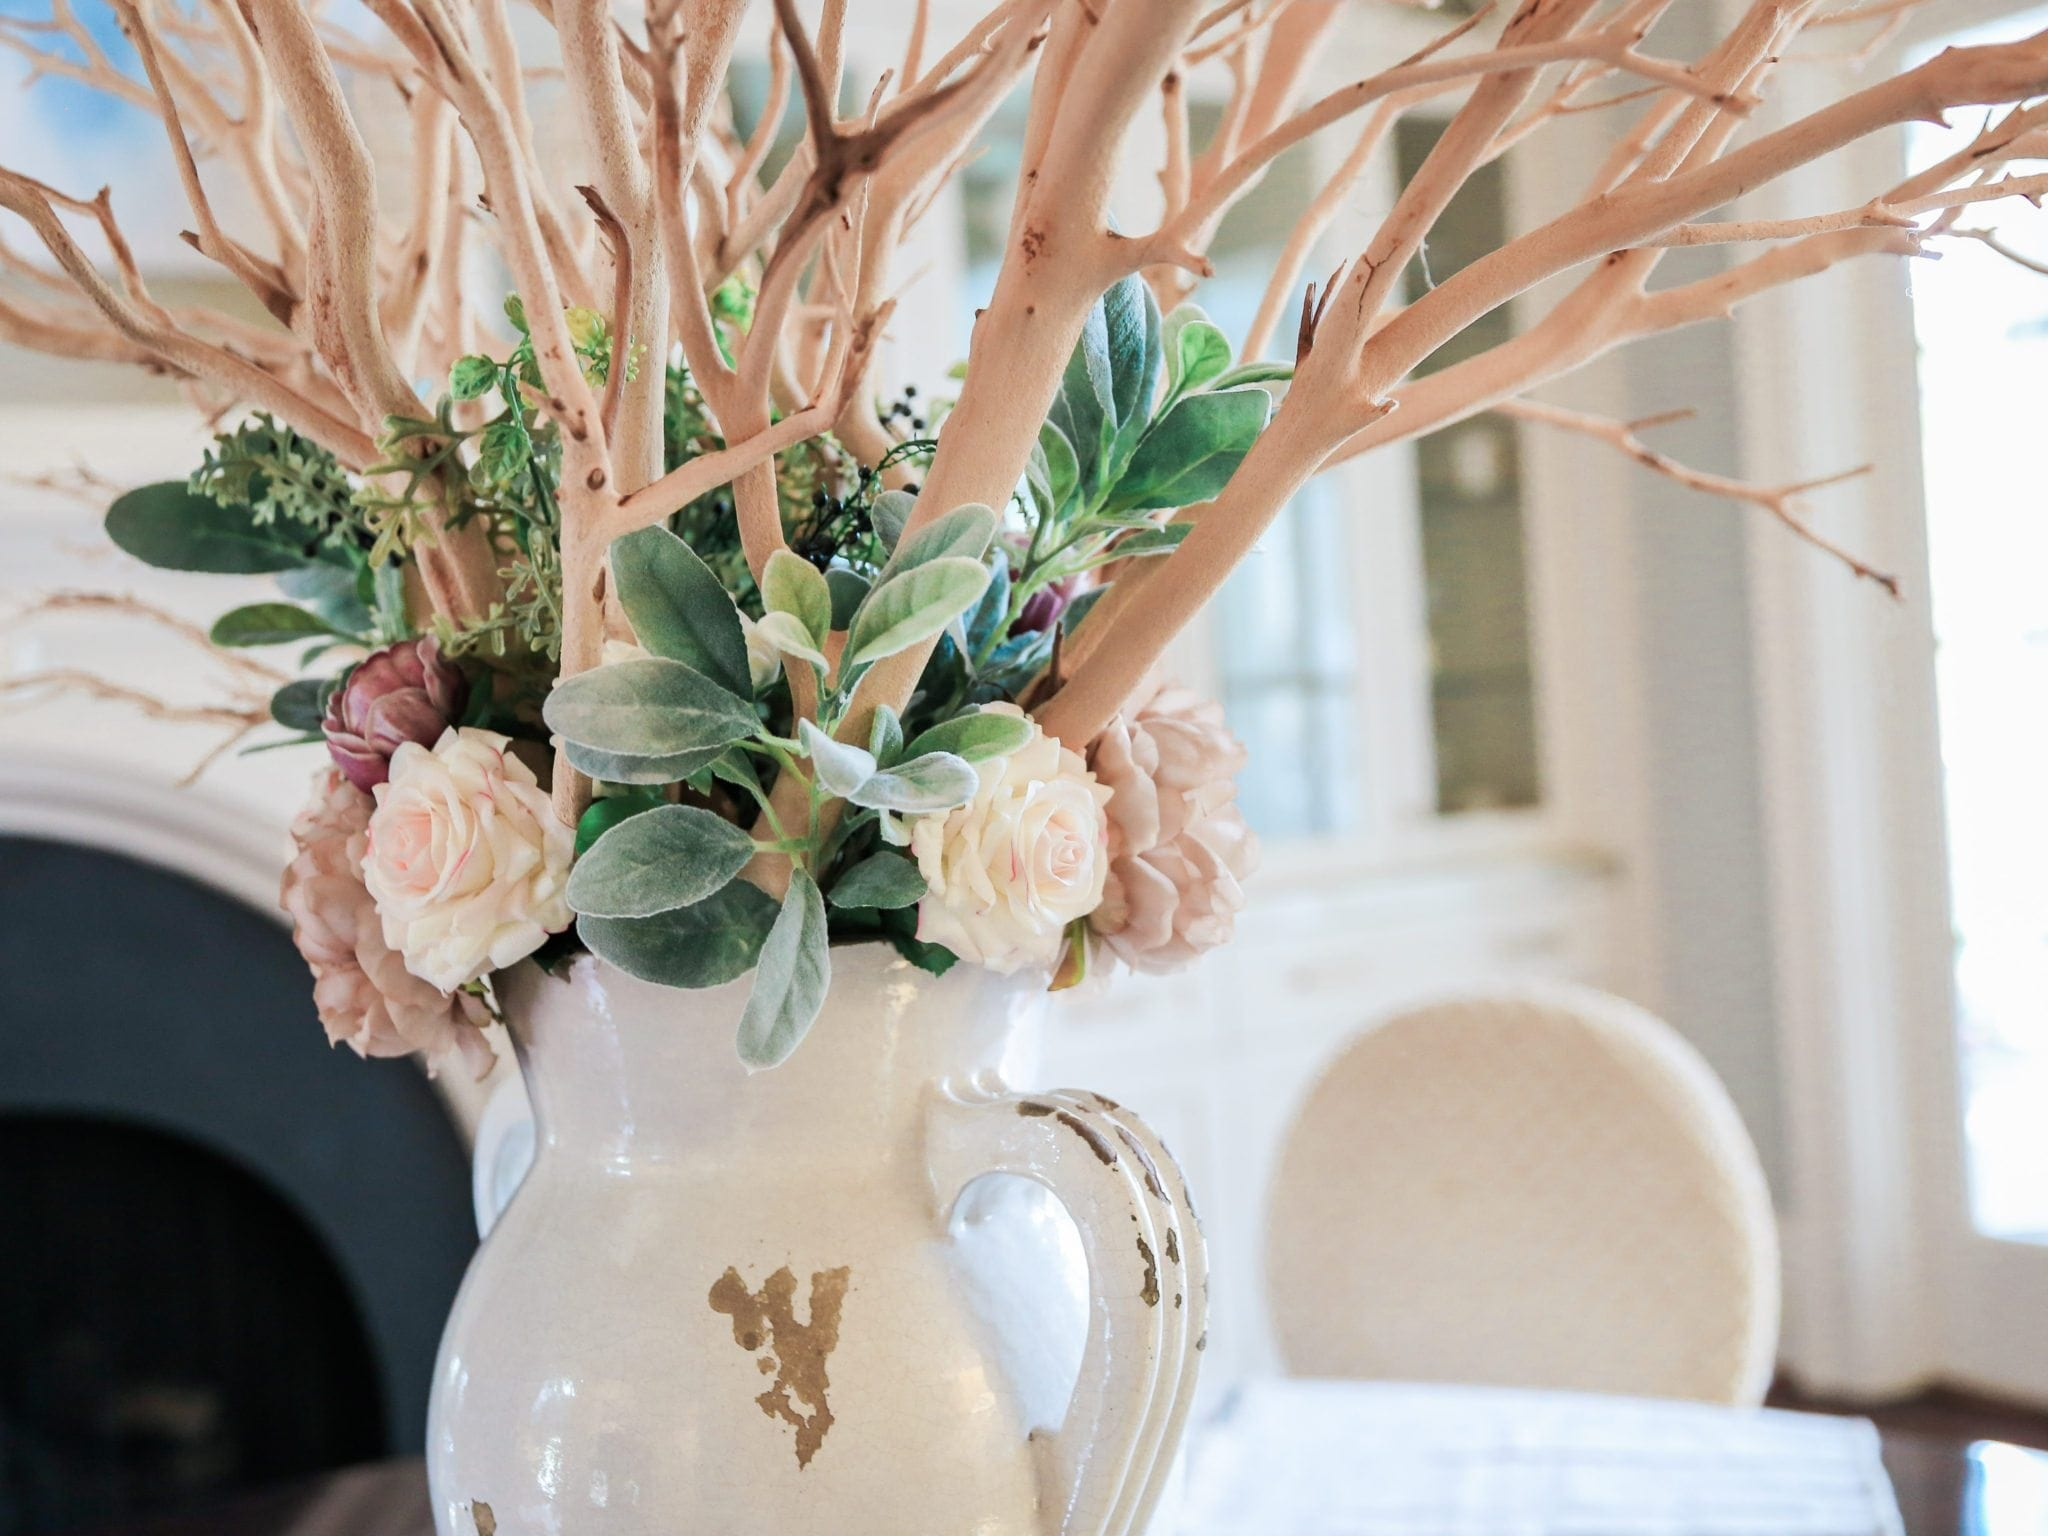 Atlanta blogger - lifestyle blogger creating home centerpiece inspiration with manzanita branches in dining room.